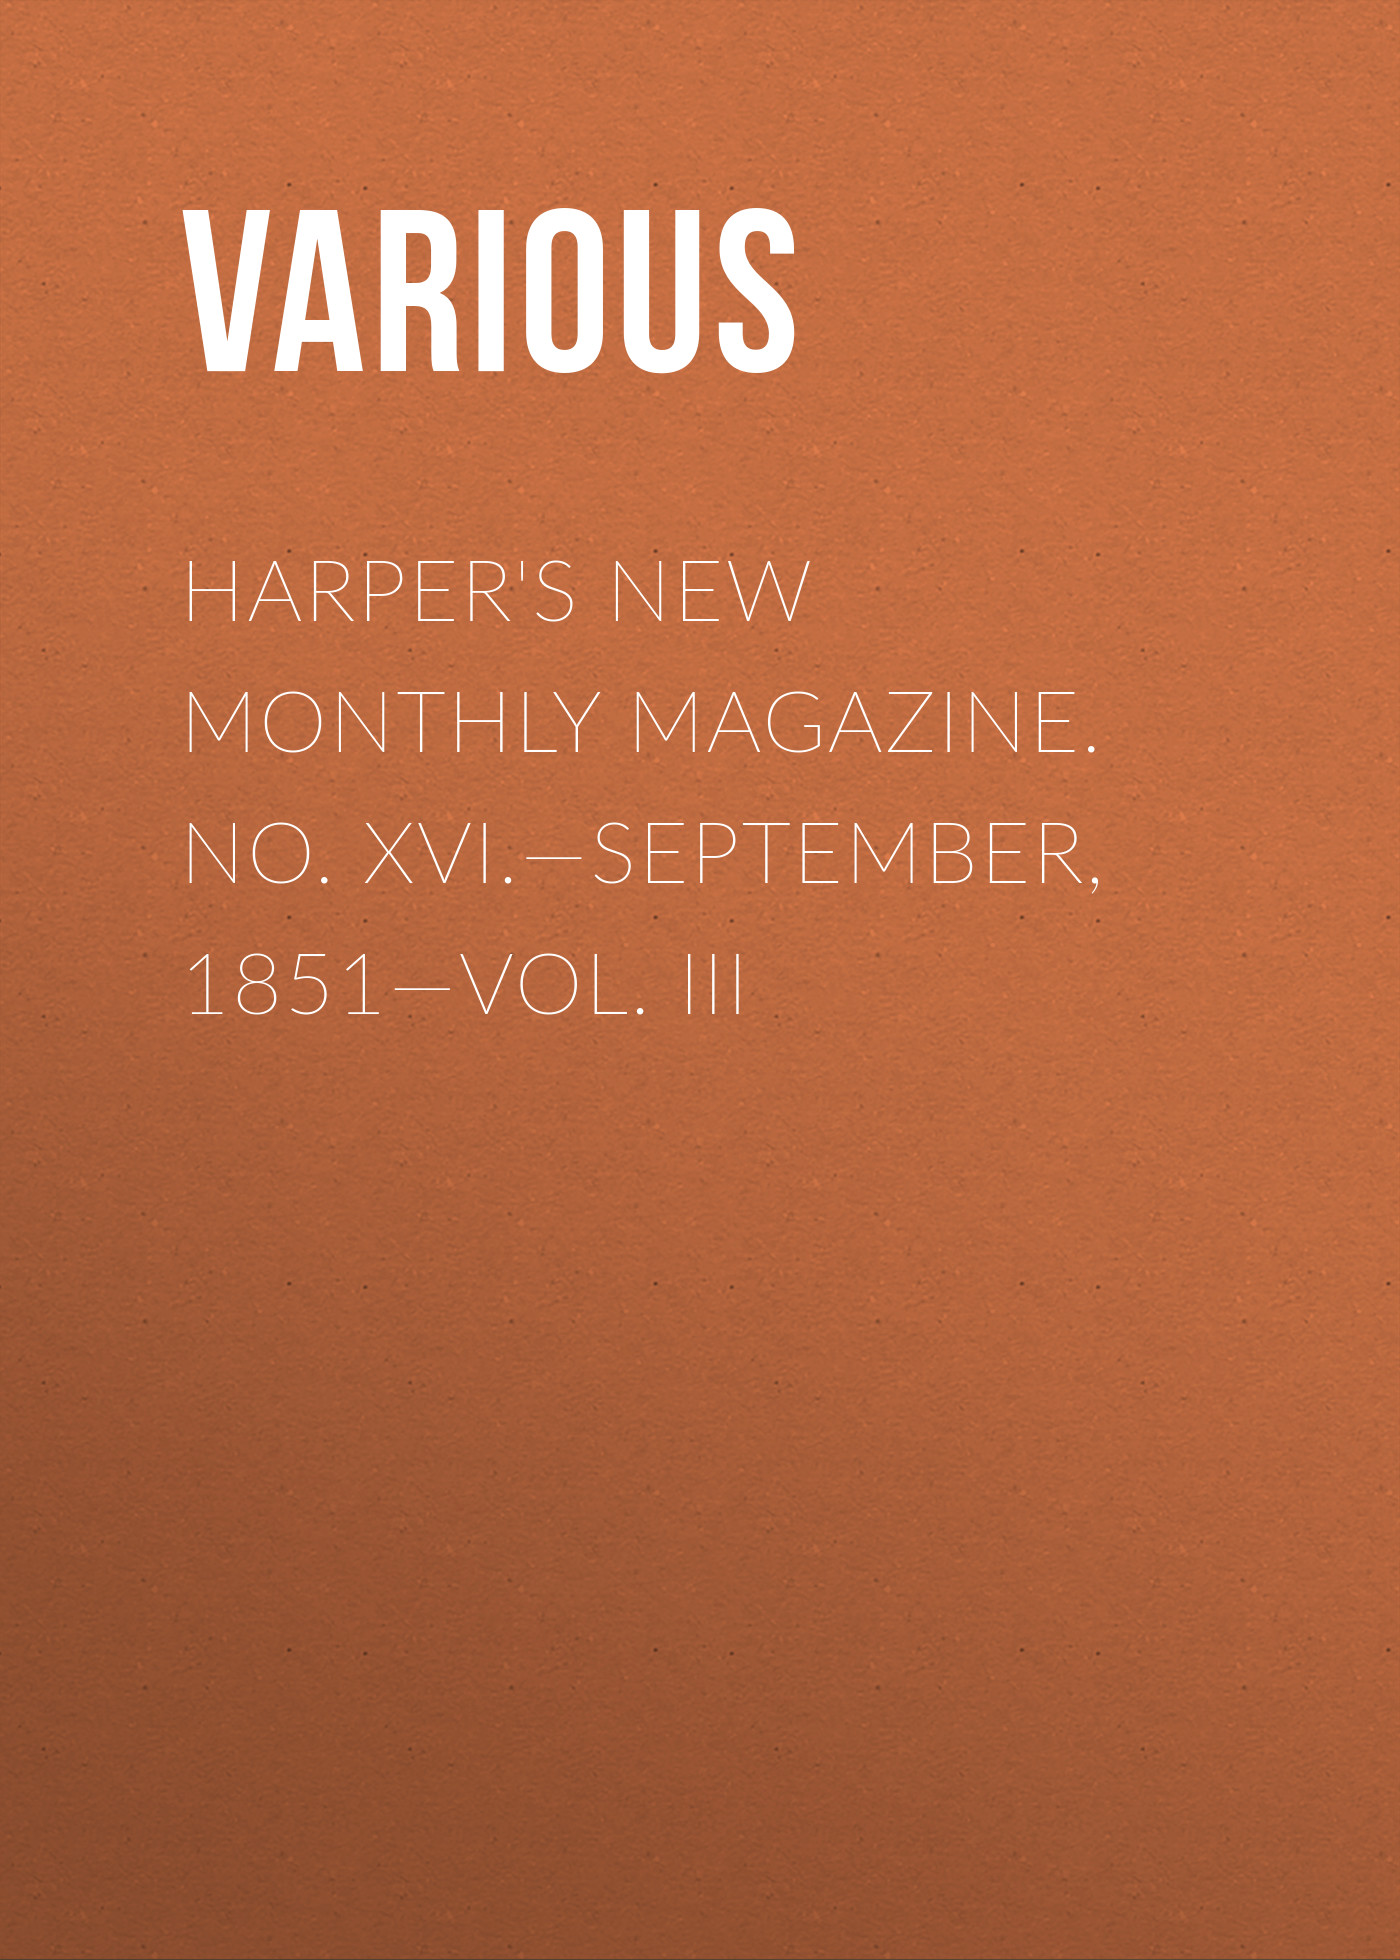 Various Harper's New Monthly Magazine. No. XVI.—September, 1851—Vol. III various harper s new monthly magazine vol iv no xx january 1852